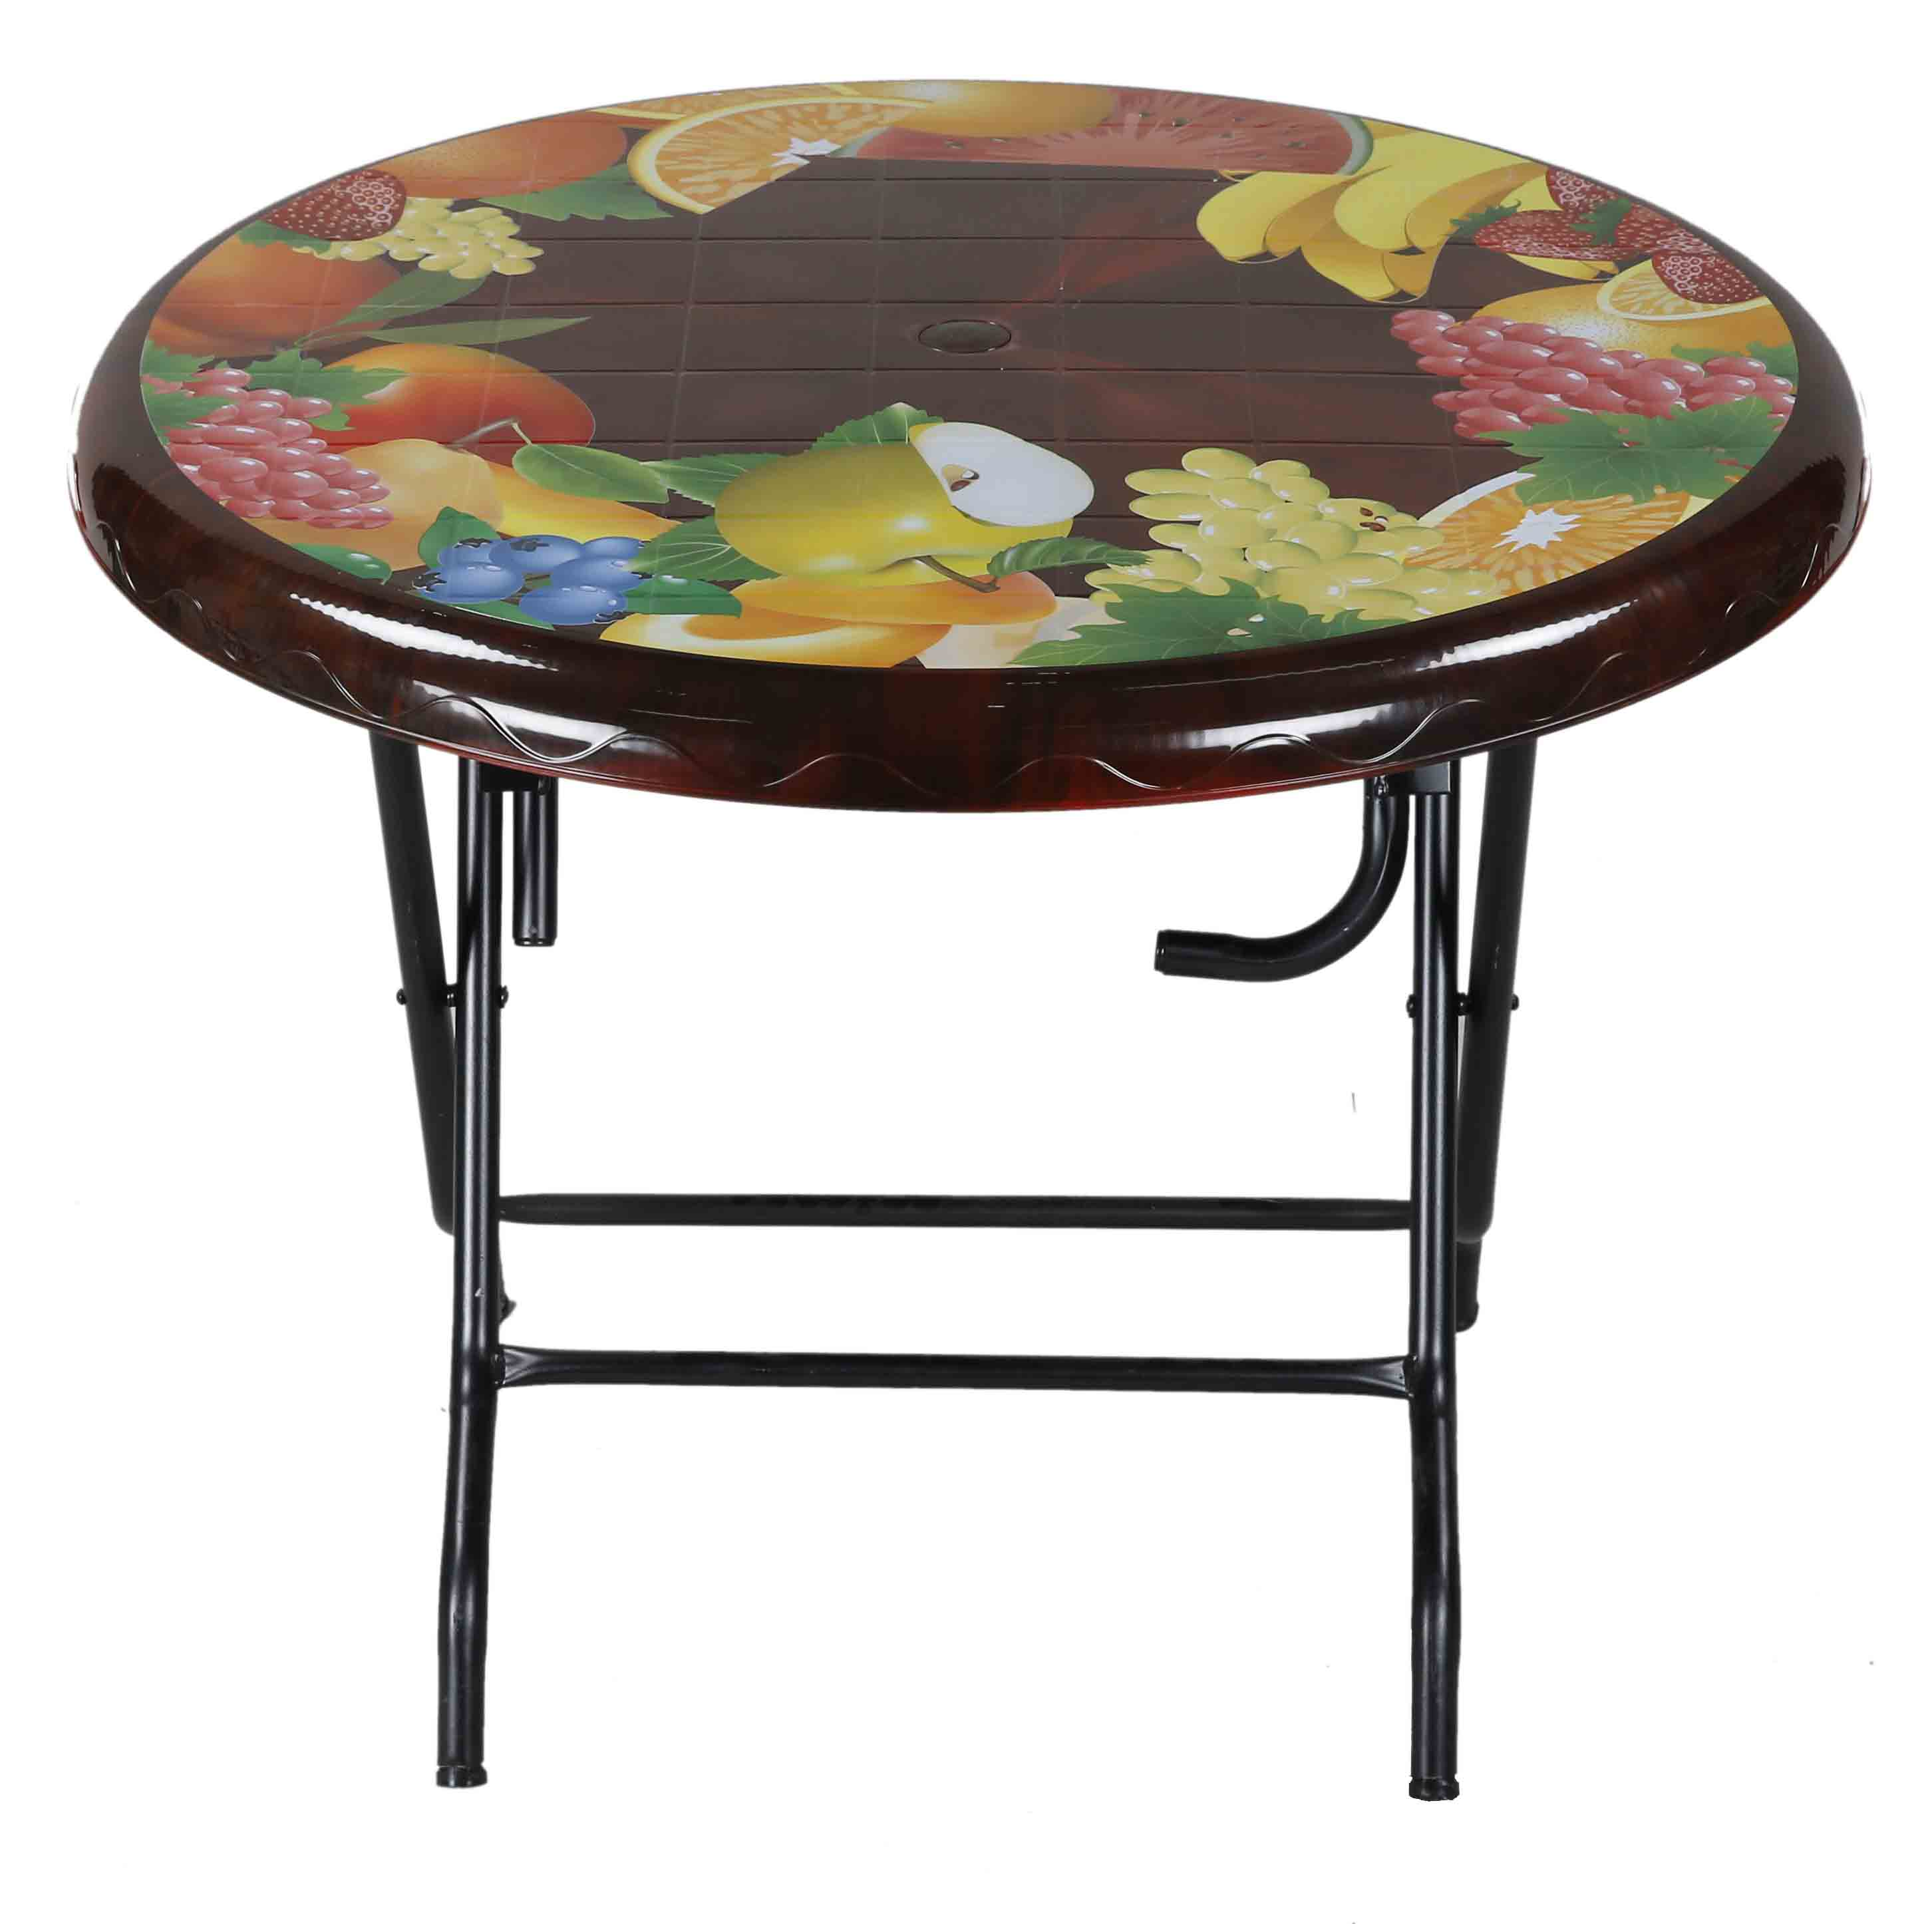 Dining Table 4 Seat Ro S/L Print Mixed Fruit-RW